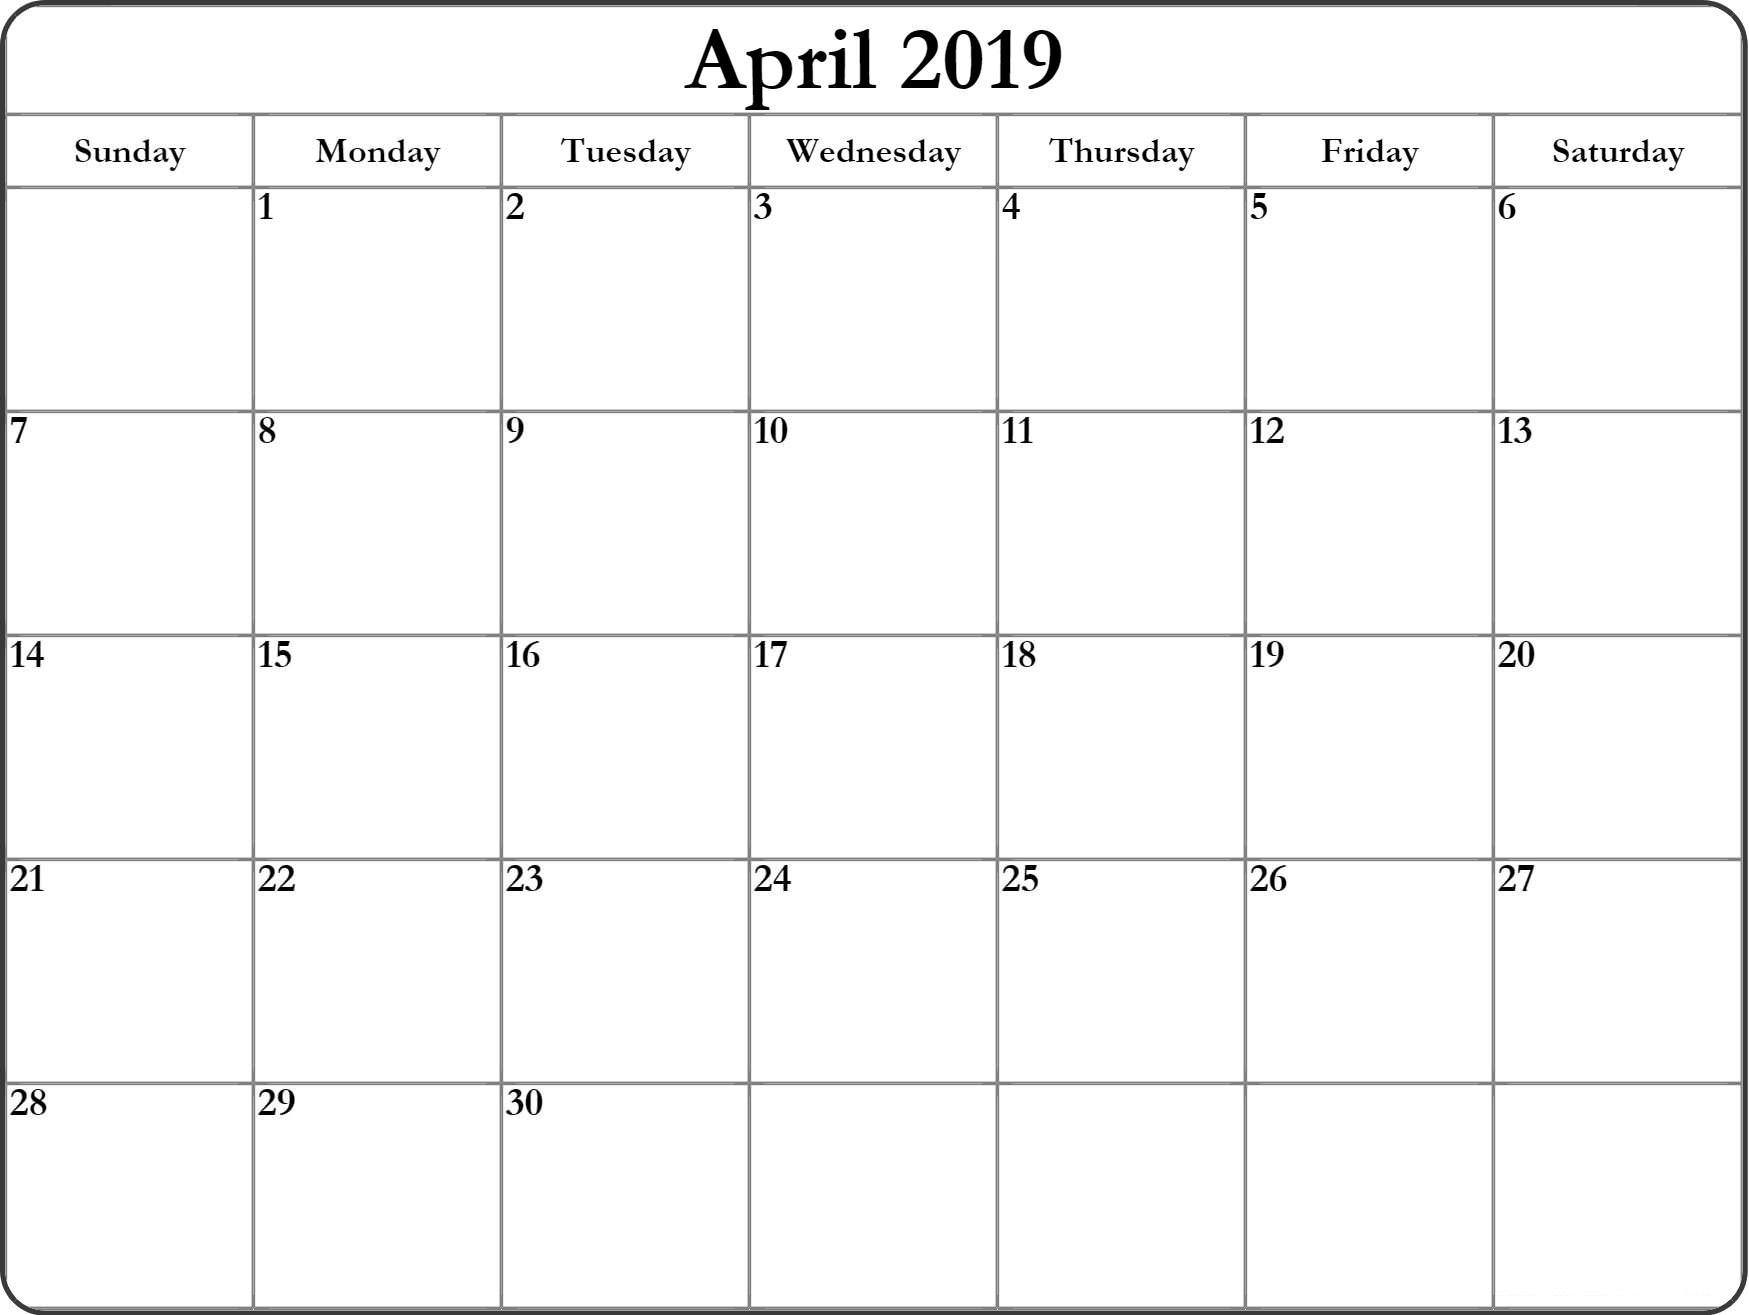 April 2019 Blank Calendar Word, Pdf, Excel